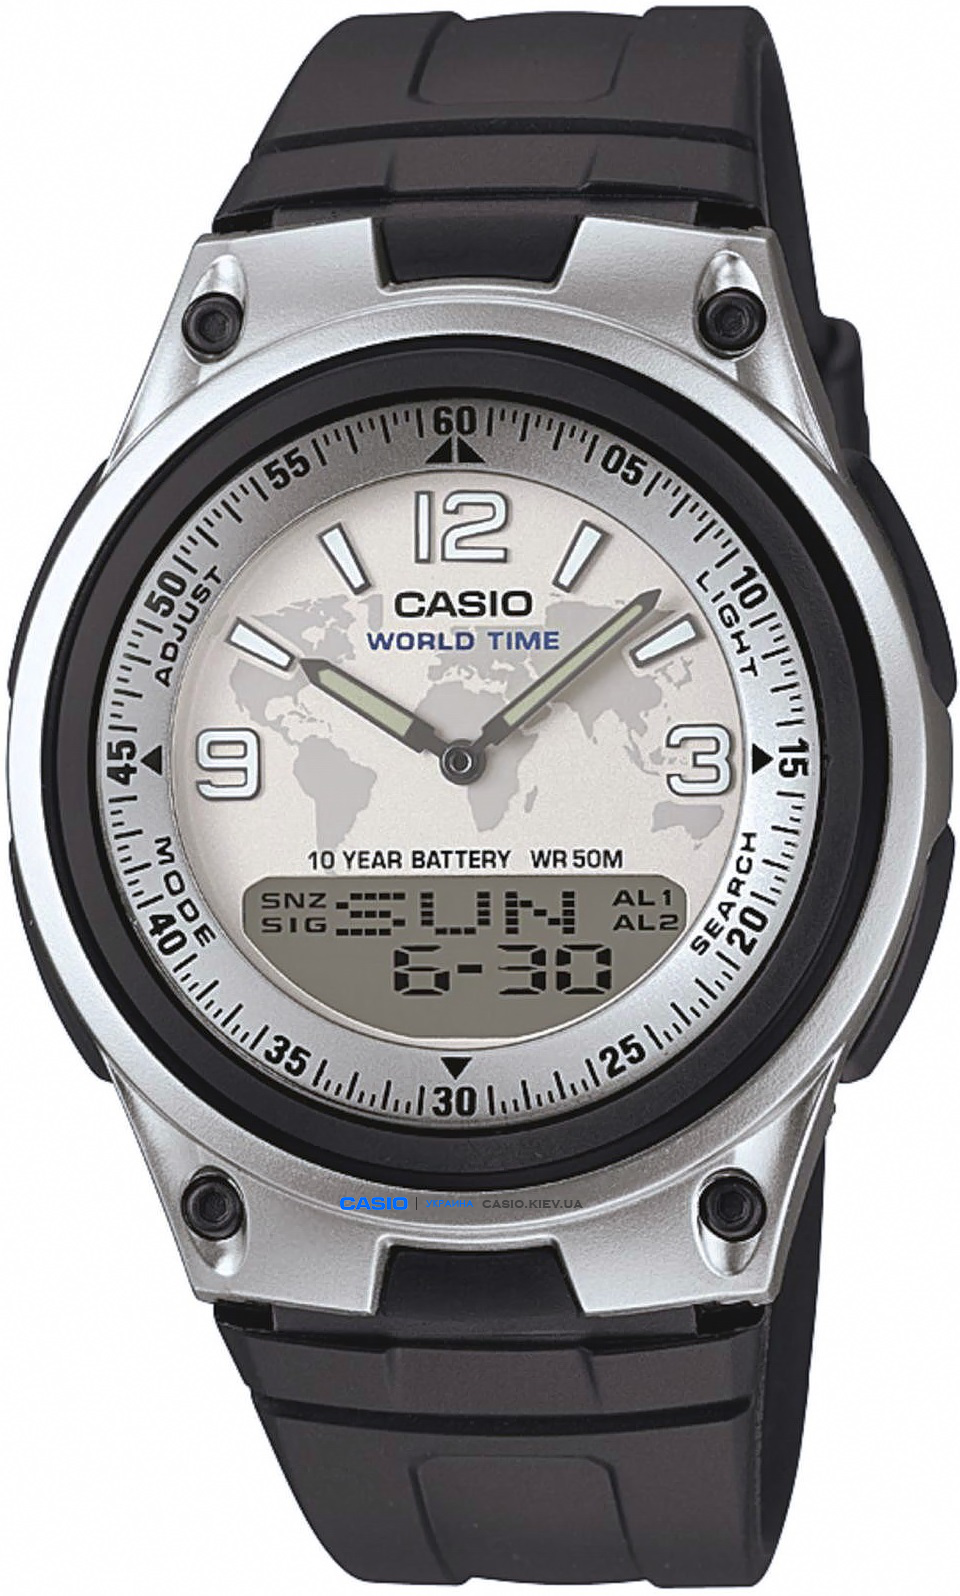 AW-80-7A2VEF, Casio Combination